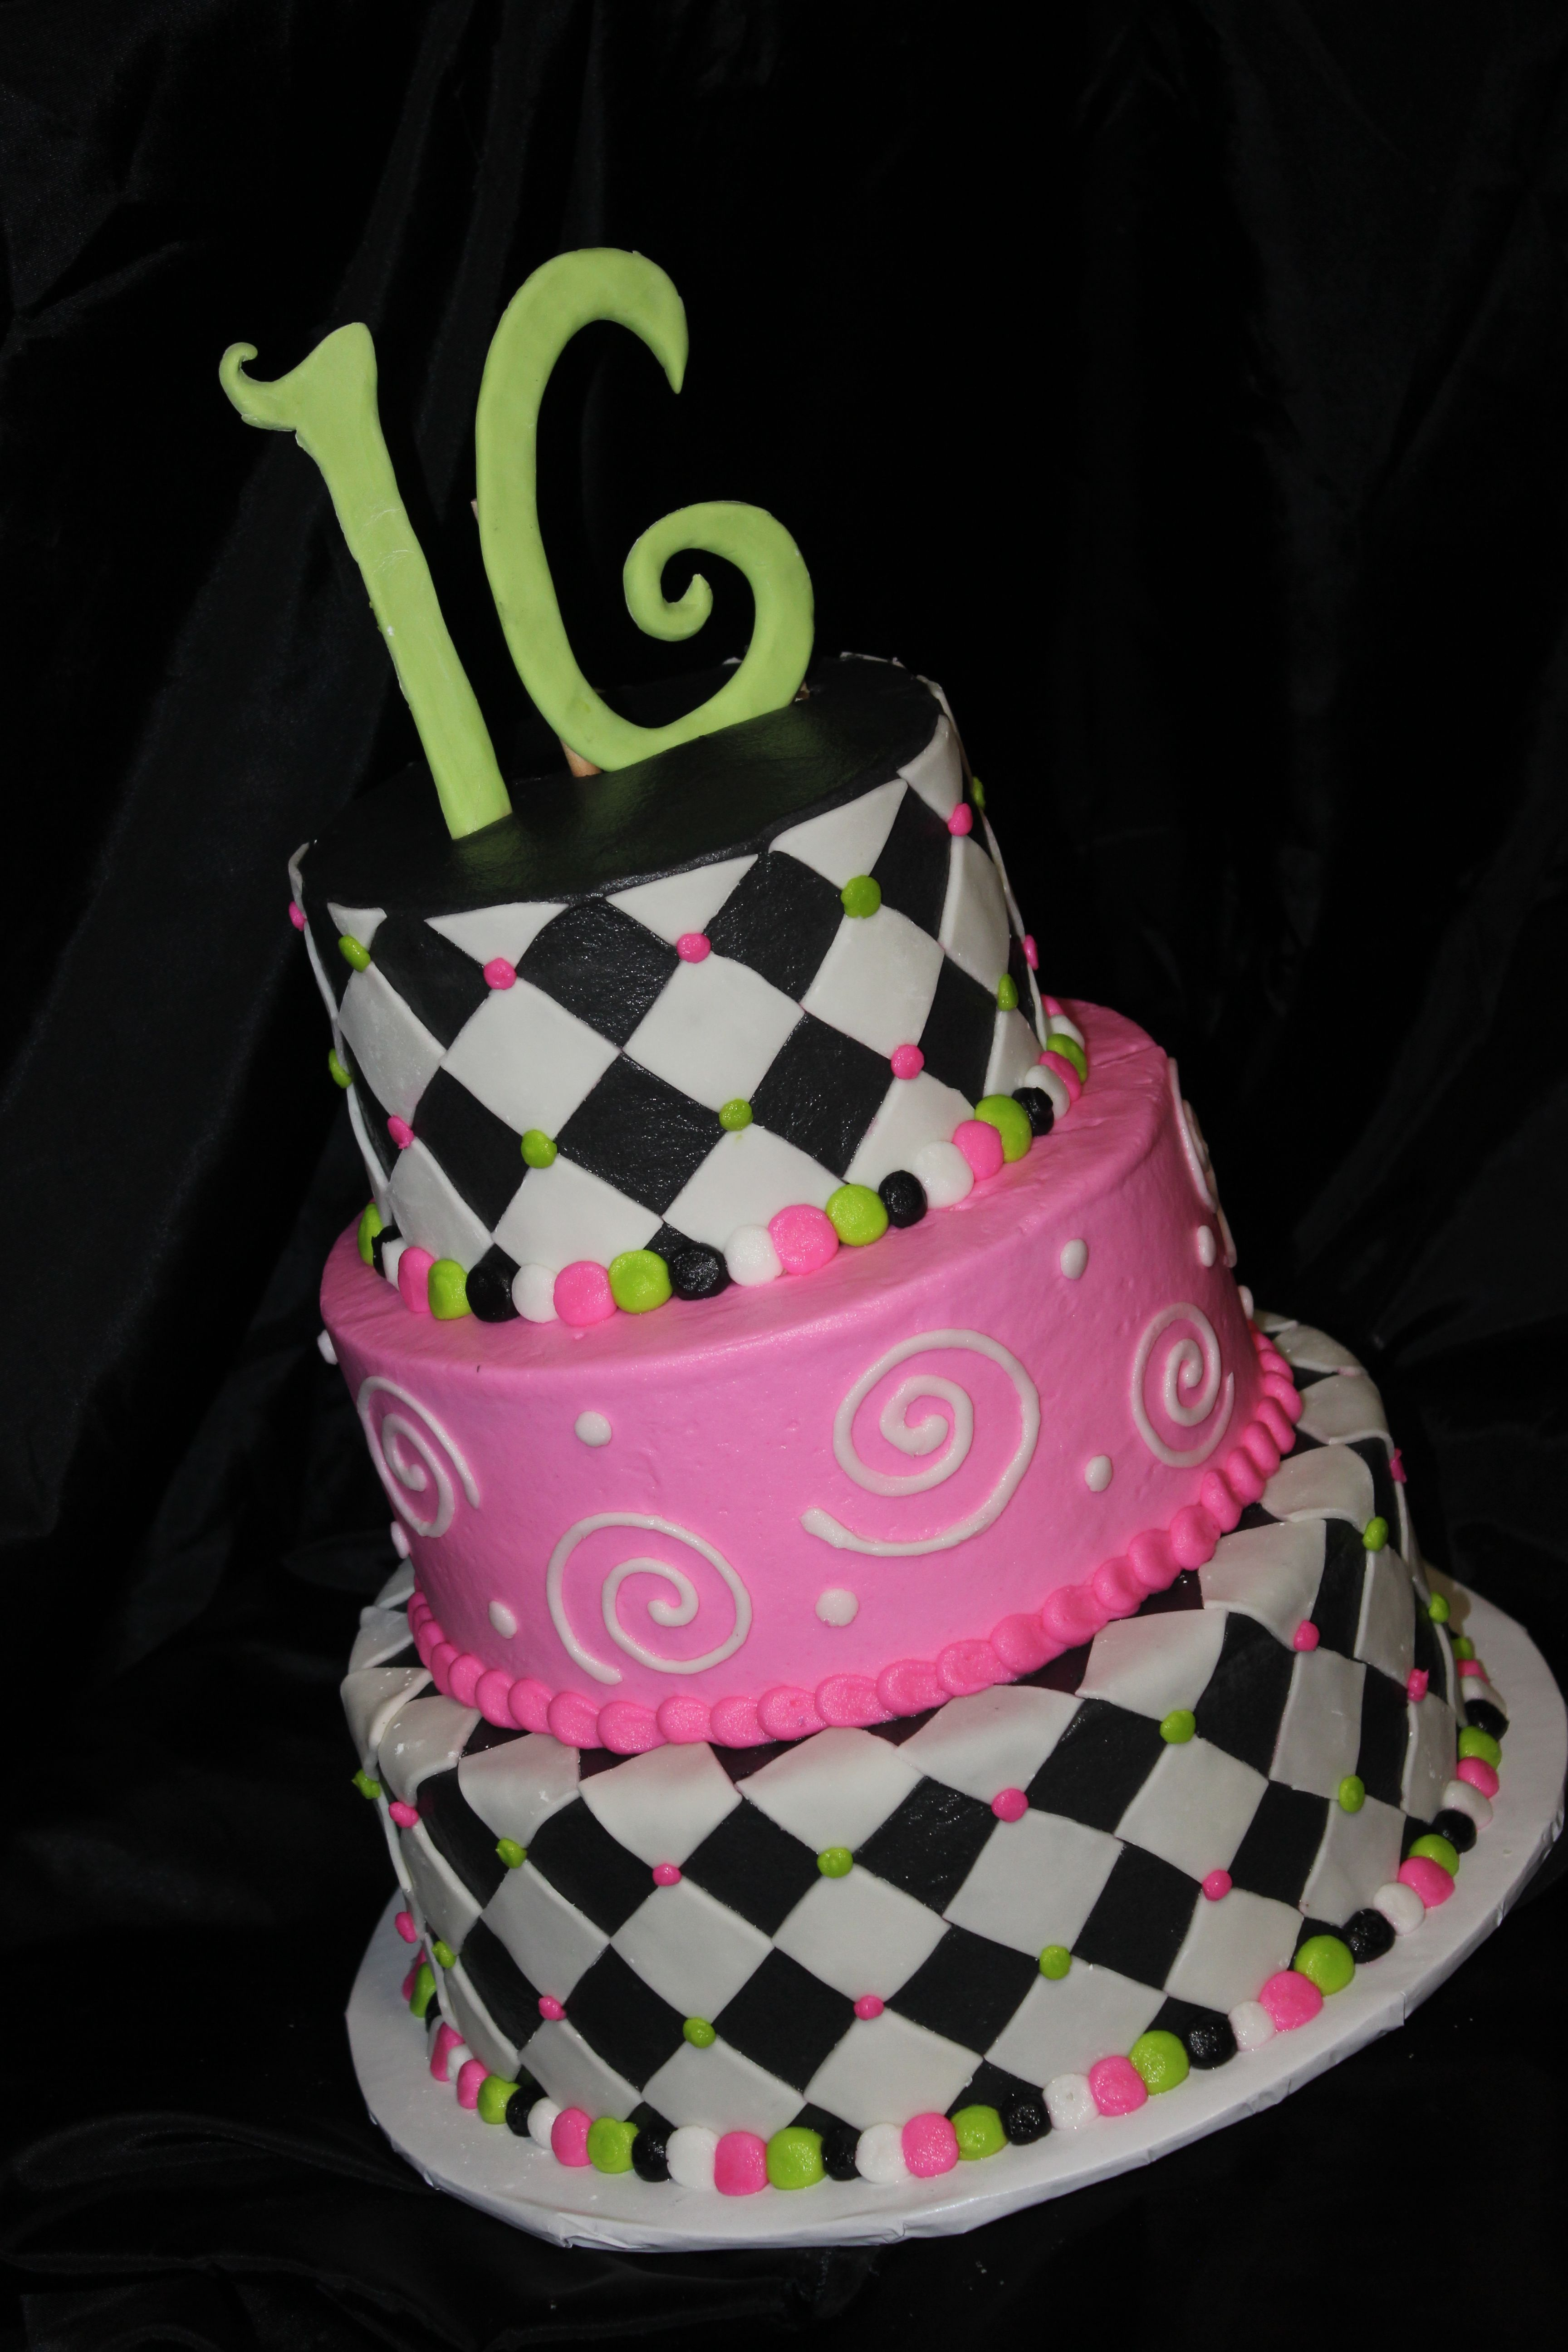 16th Birthday Cake for Girl cakes Pinterest 16th birthday